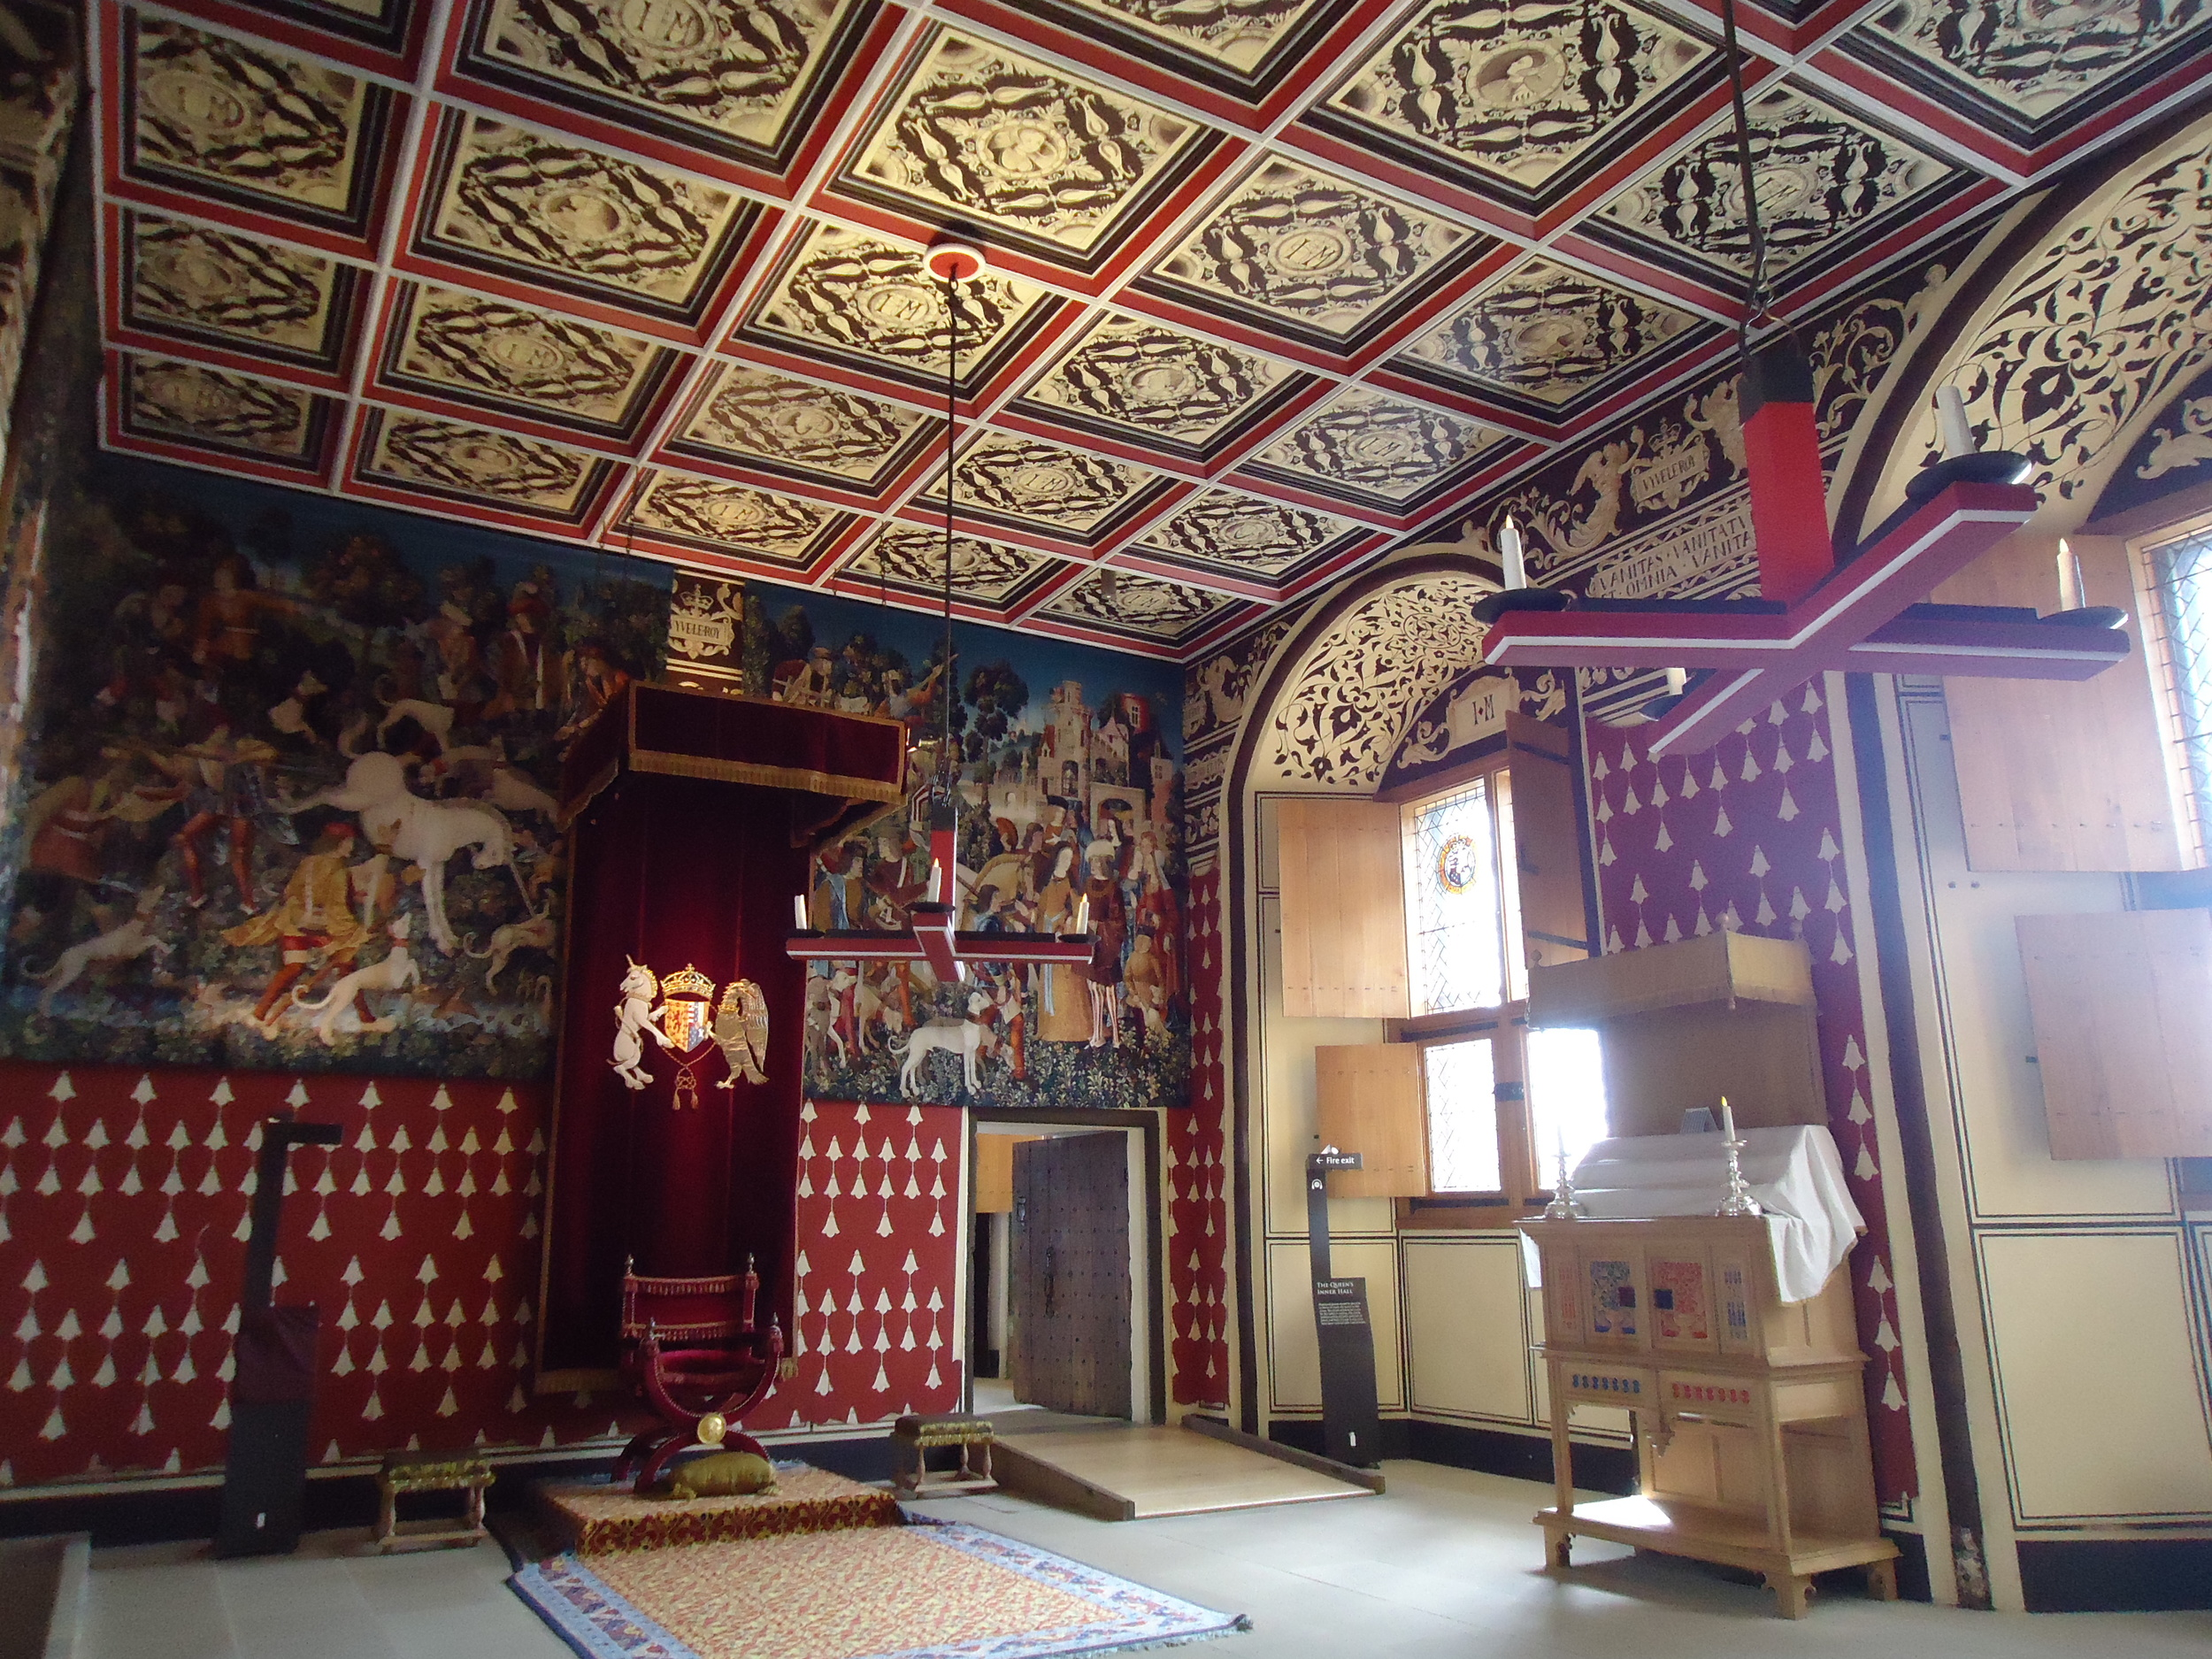 Stirling Castle Scotland interior